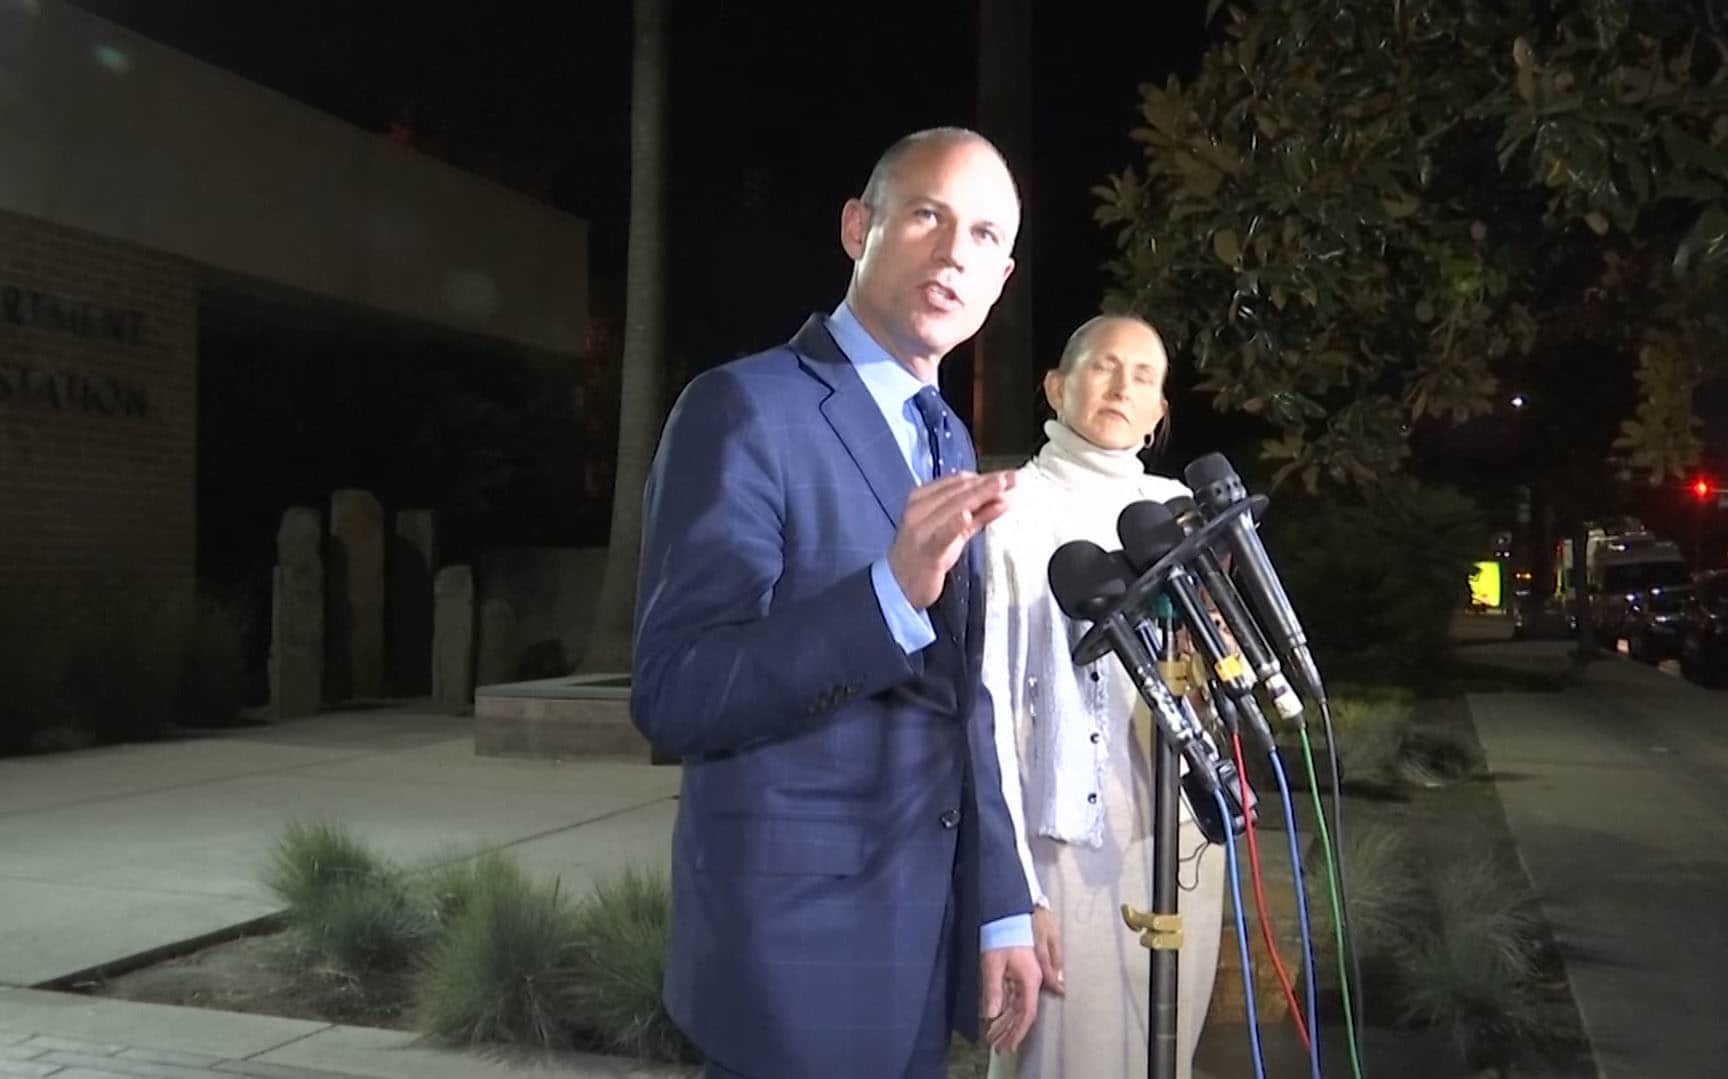 Stormy Daniels lawyer arrested in Los Angeles on suspicion of domestic violence